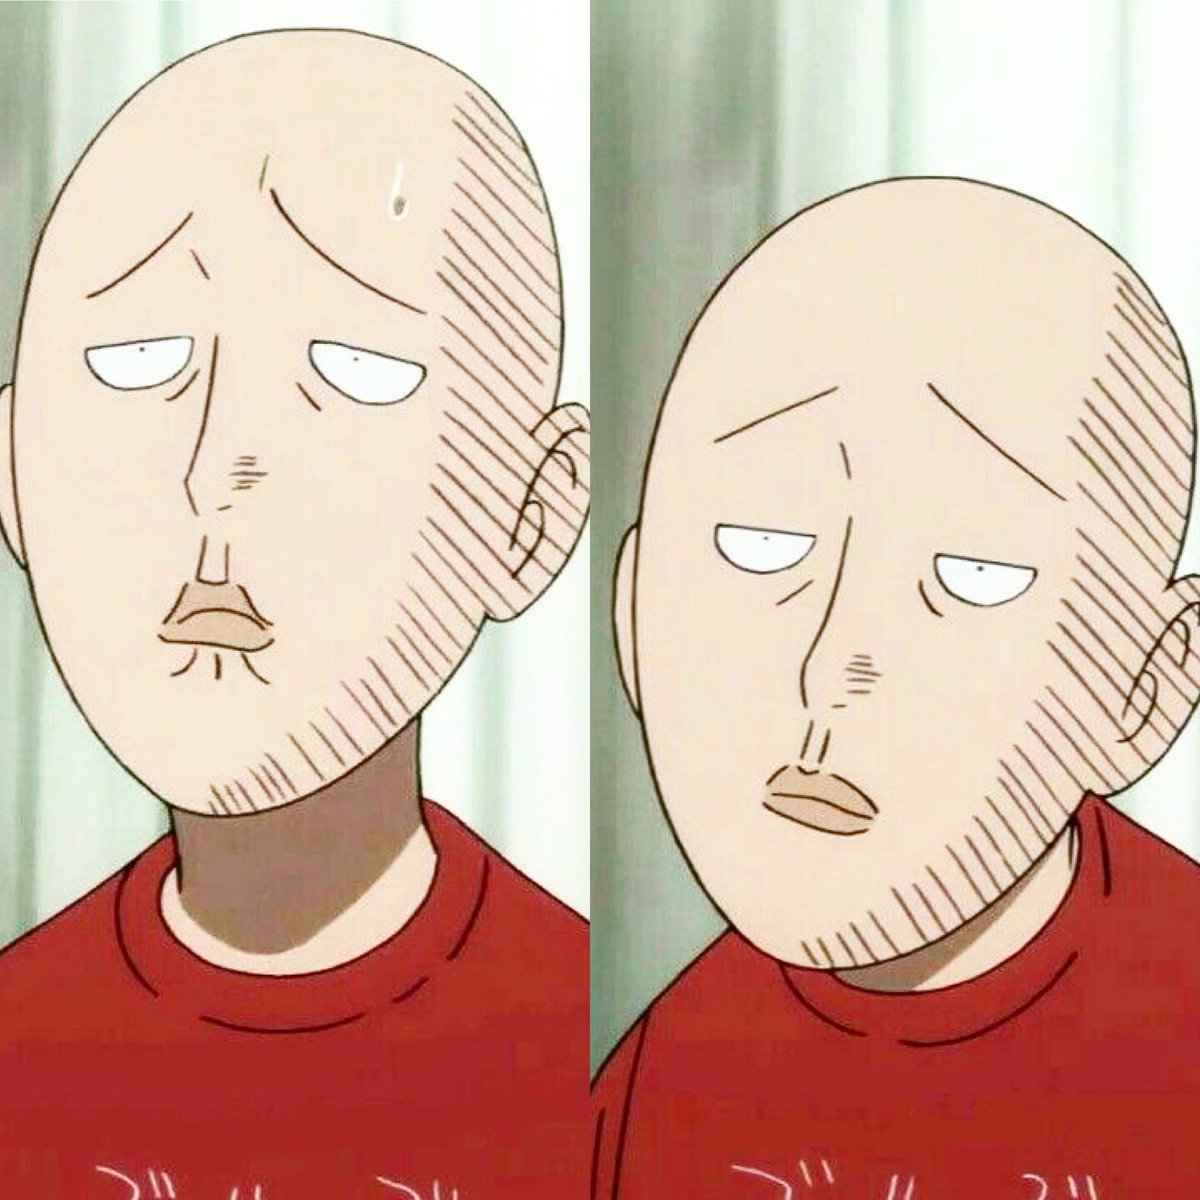 I love his face 😂👌🏻 amazing #OnePunchMan #OnePunchManSaitama #OPMSaitama #Saitama #OnePunchManAnime #saitamaonepunchman #saitamaopm #Anime #Manga #Animeseries